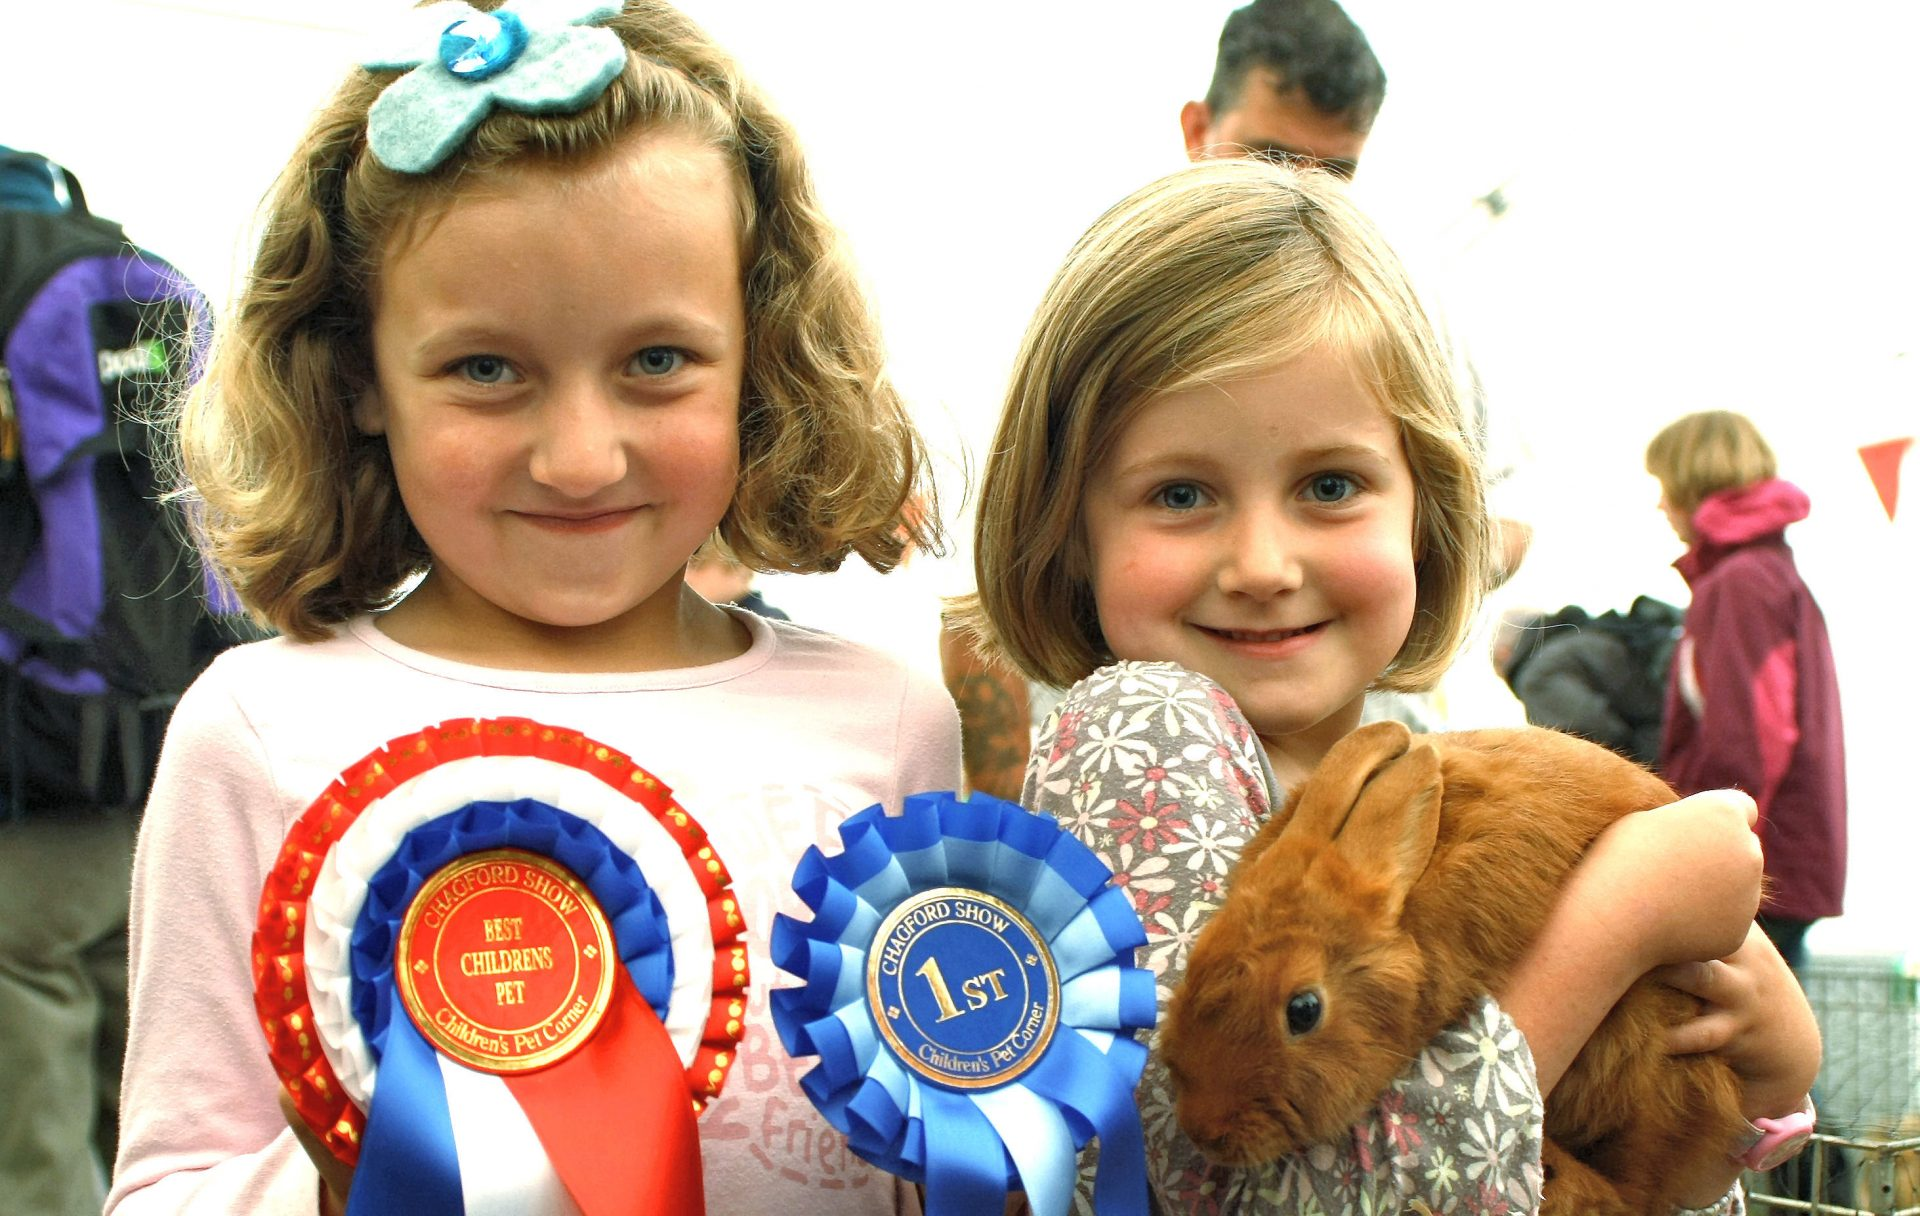 Prizewinners at Chagford Show. Our neighbour's grandchildren.